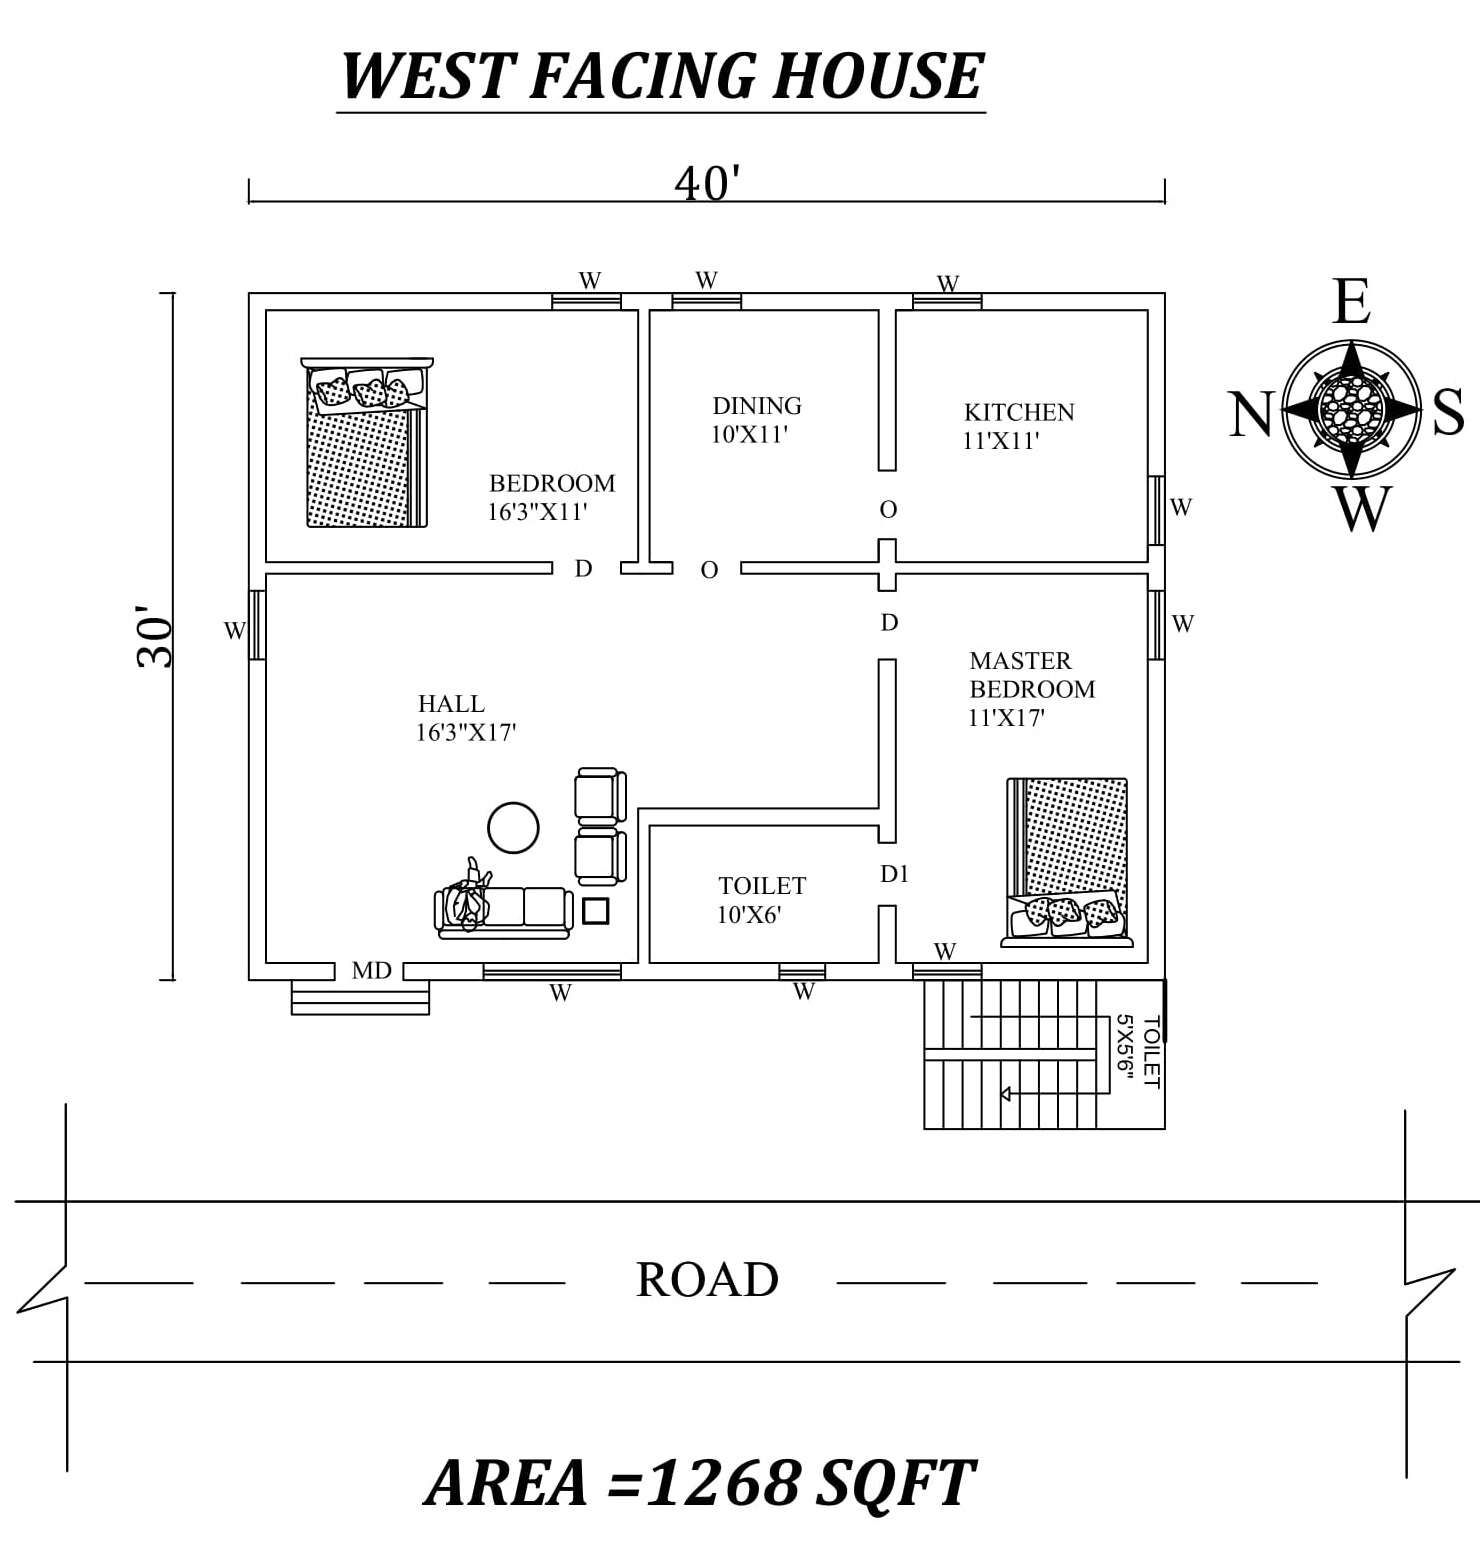 40 x30 Marvelous 2bhk West facing House Plan As Per Vastu Shastra Autocad DWG and Pdf file details